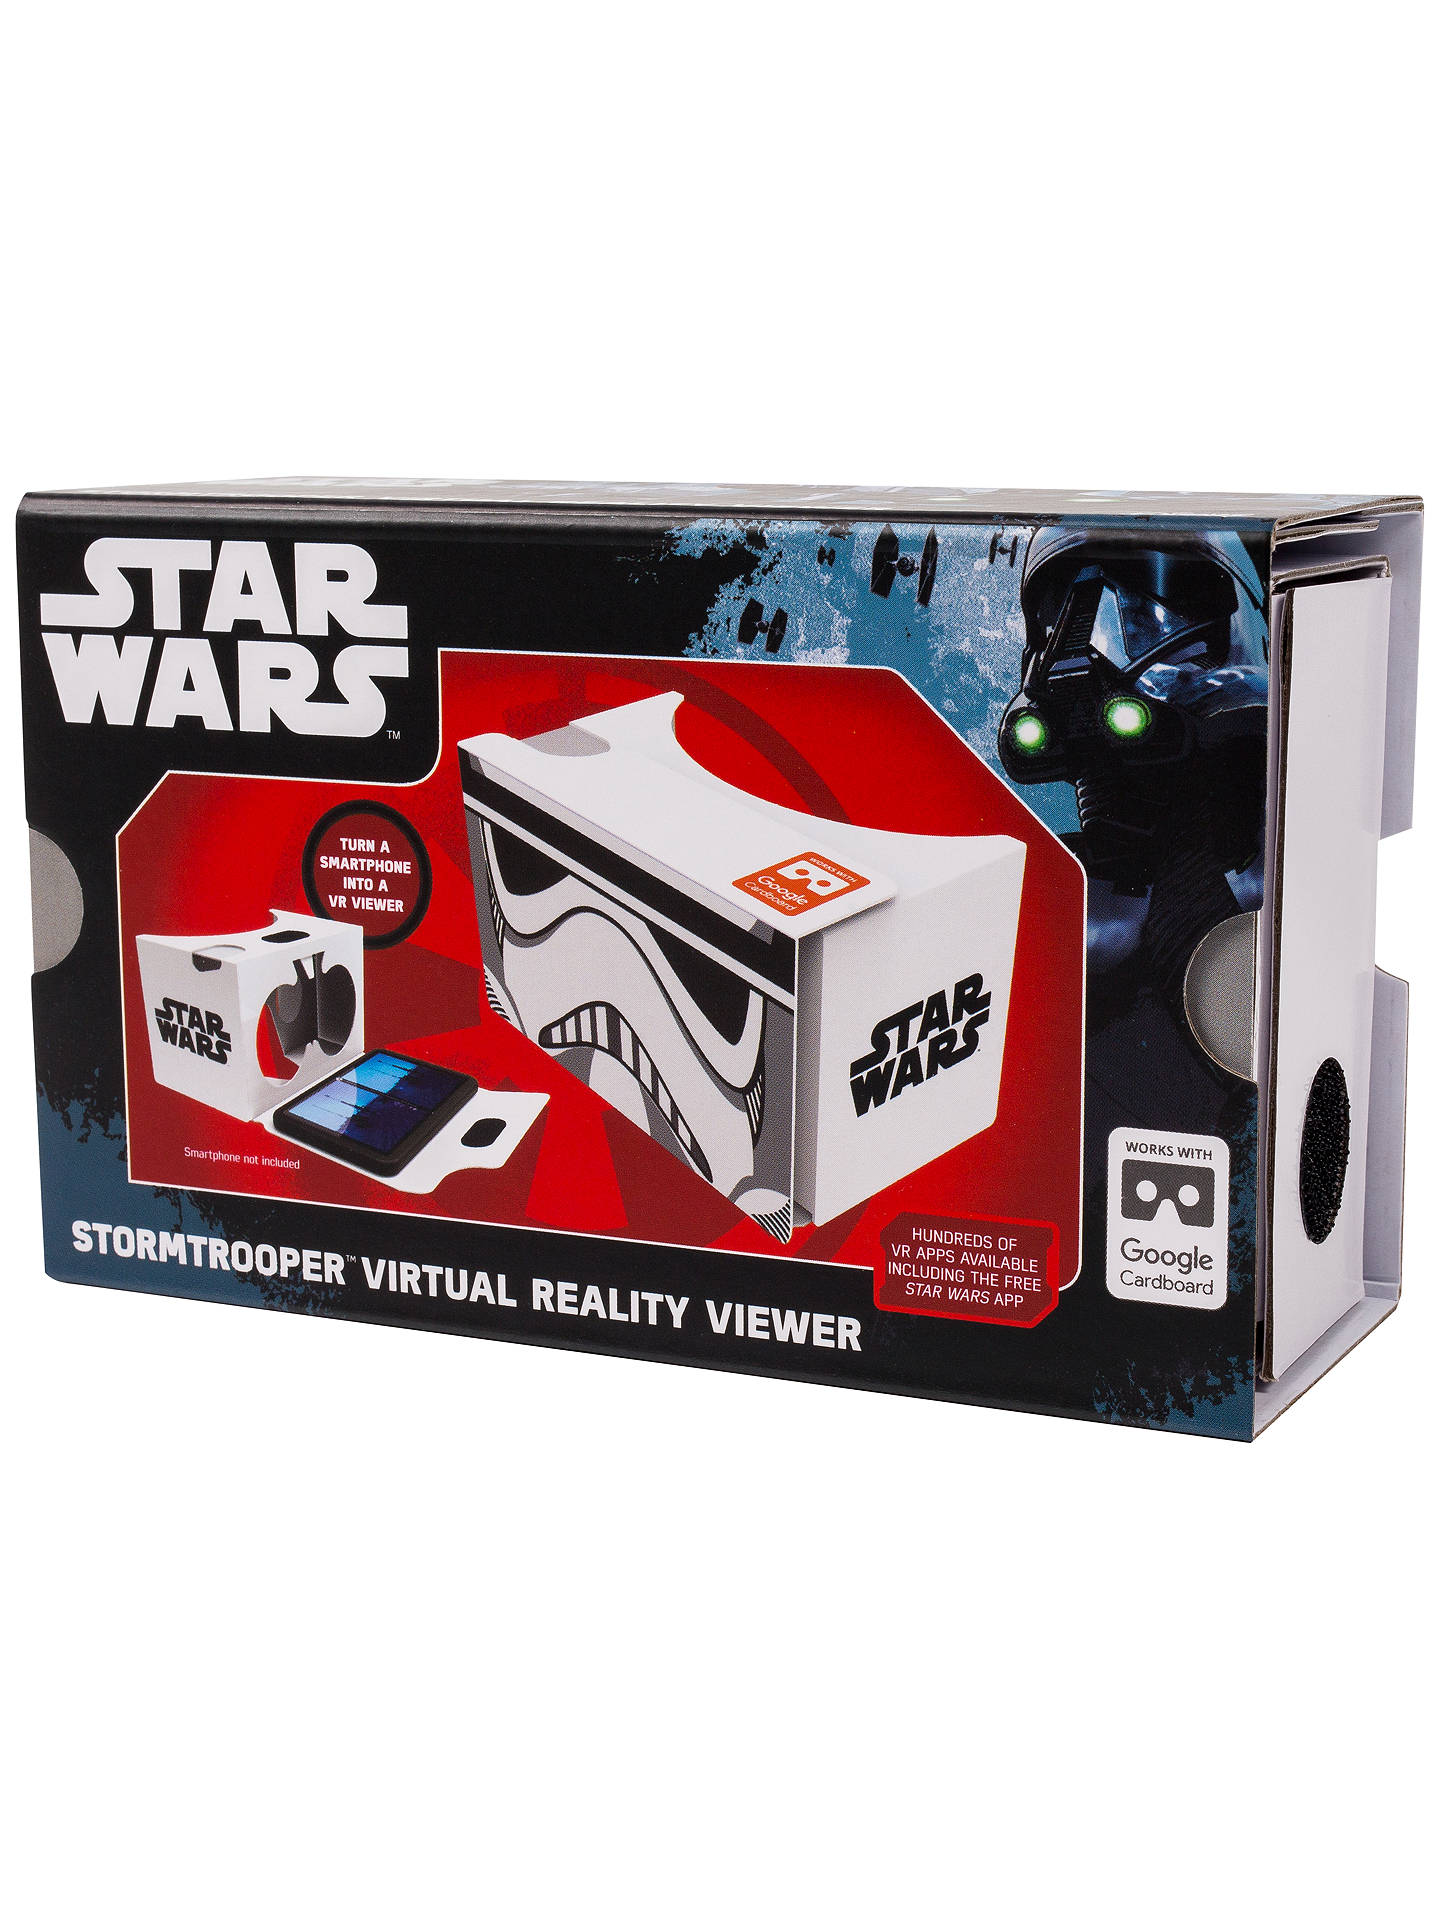 Star Wars: The Force Awakens Cardboard VR Viewer, Imperial